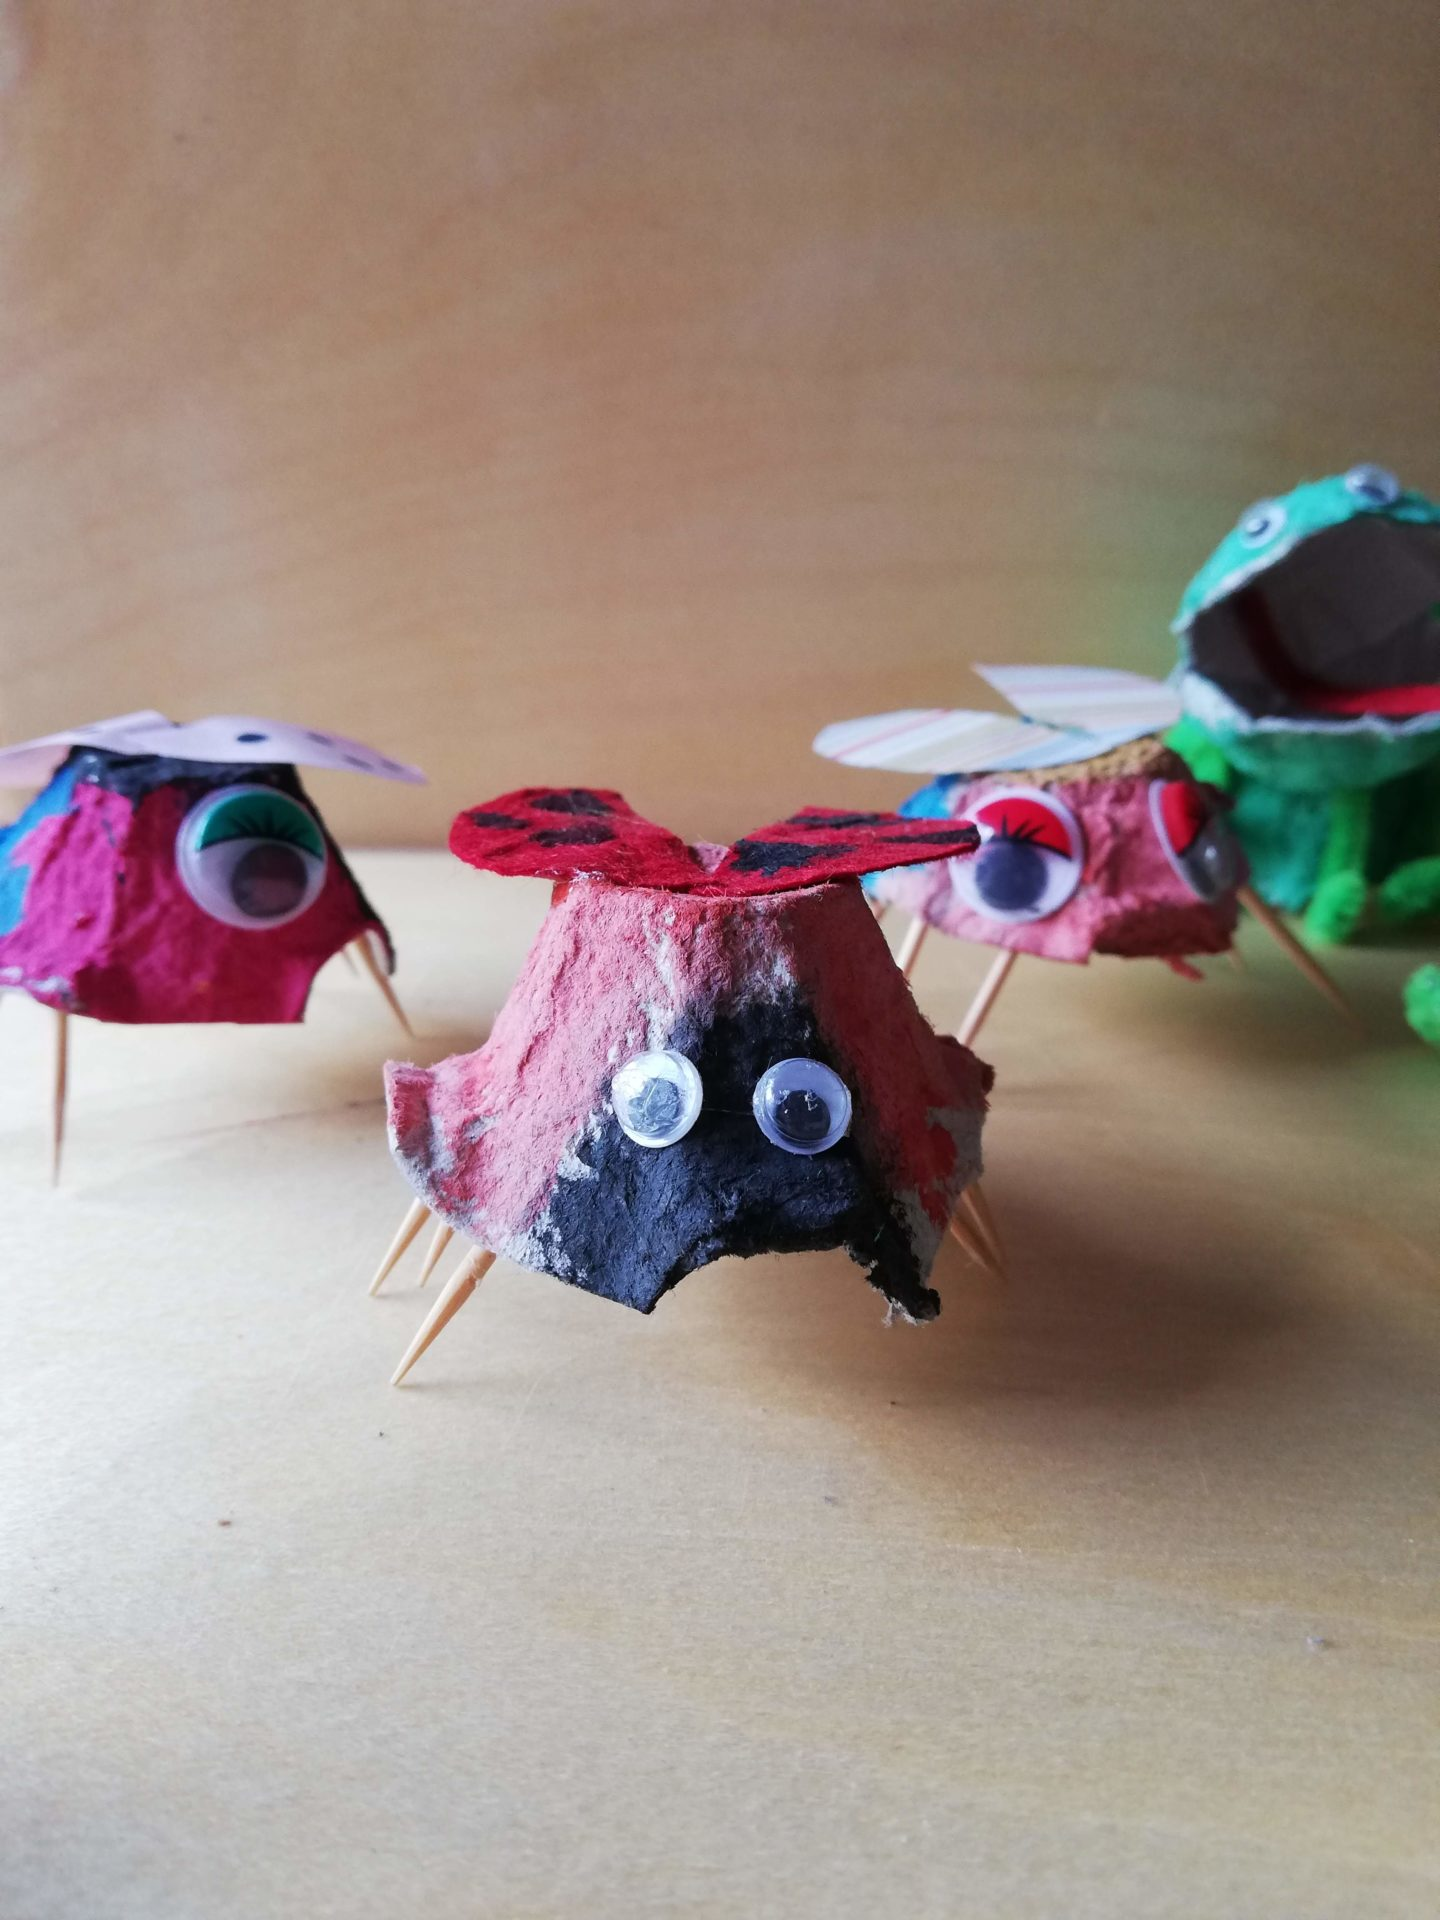 Up-cycled Animals From Egg Cartons | HarassedMom